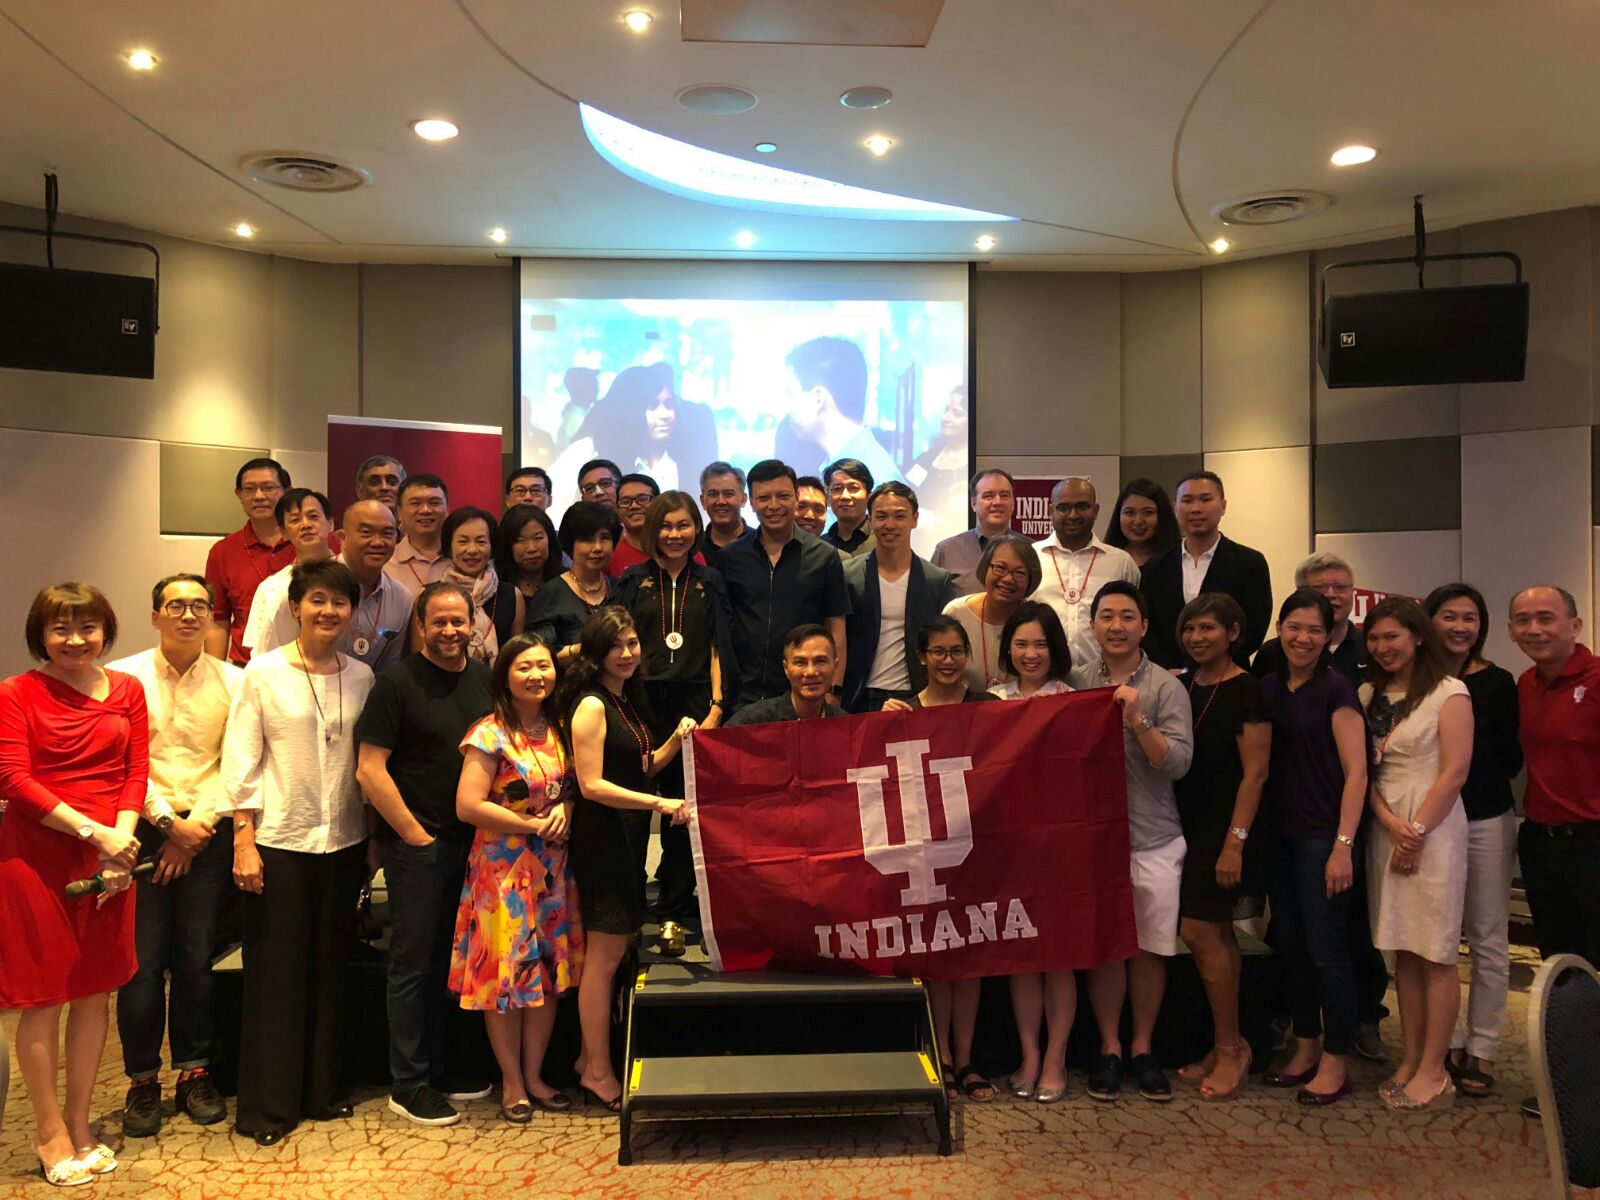 Wine Tasting event with Indiana University Alumni in Singapore